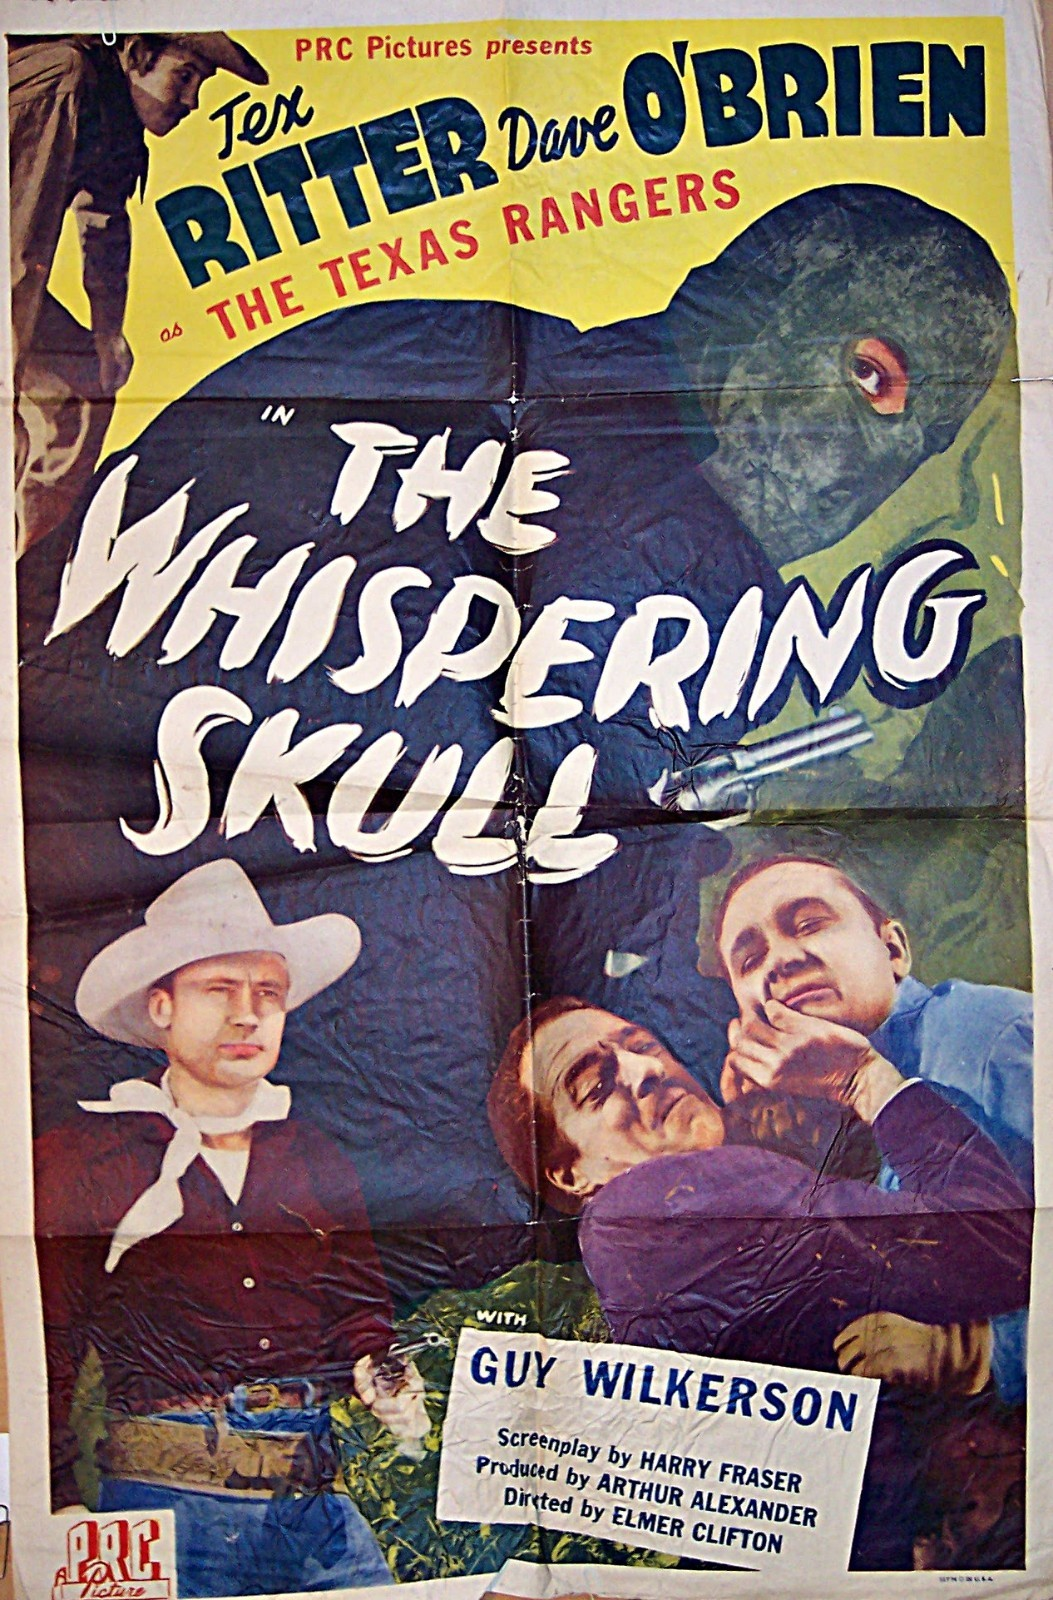 Pictured is a US one-sheet promotional poster for the 1944 Elmer Clifton film The Whispering Skull starring Tex Ritter.